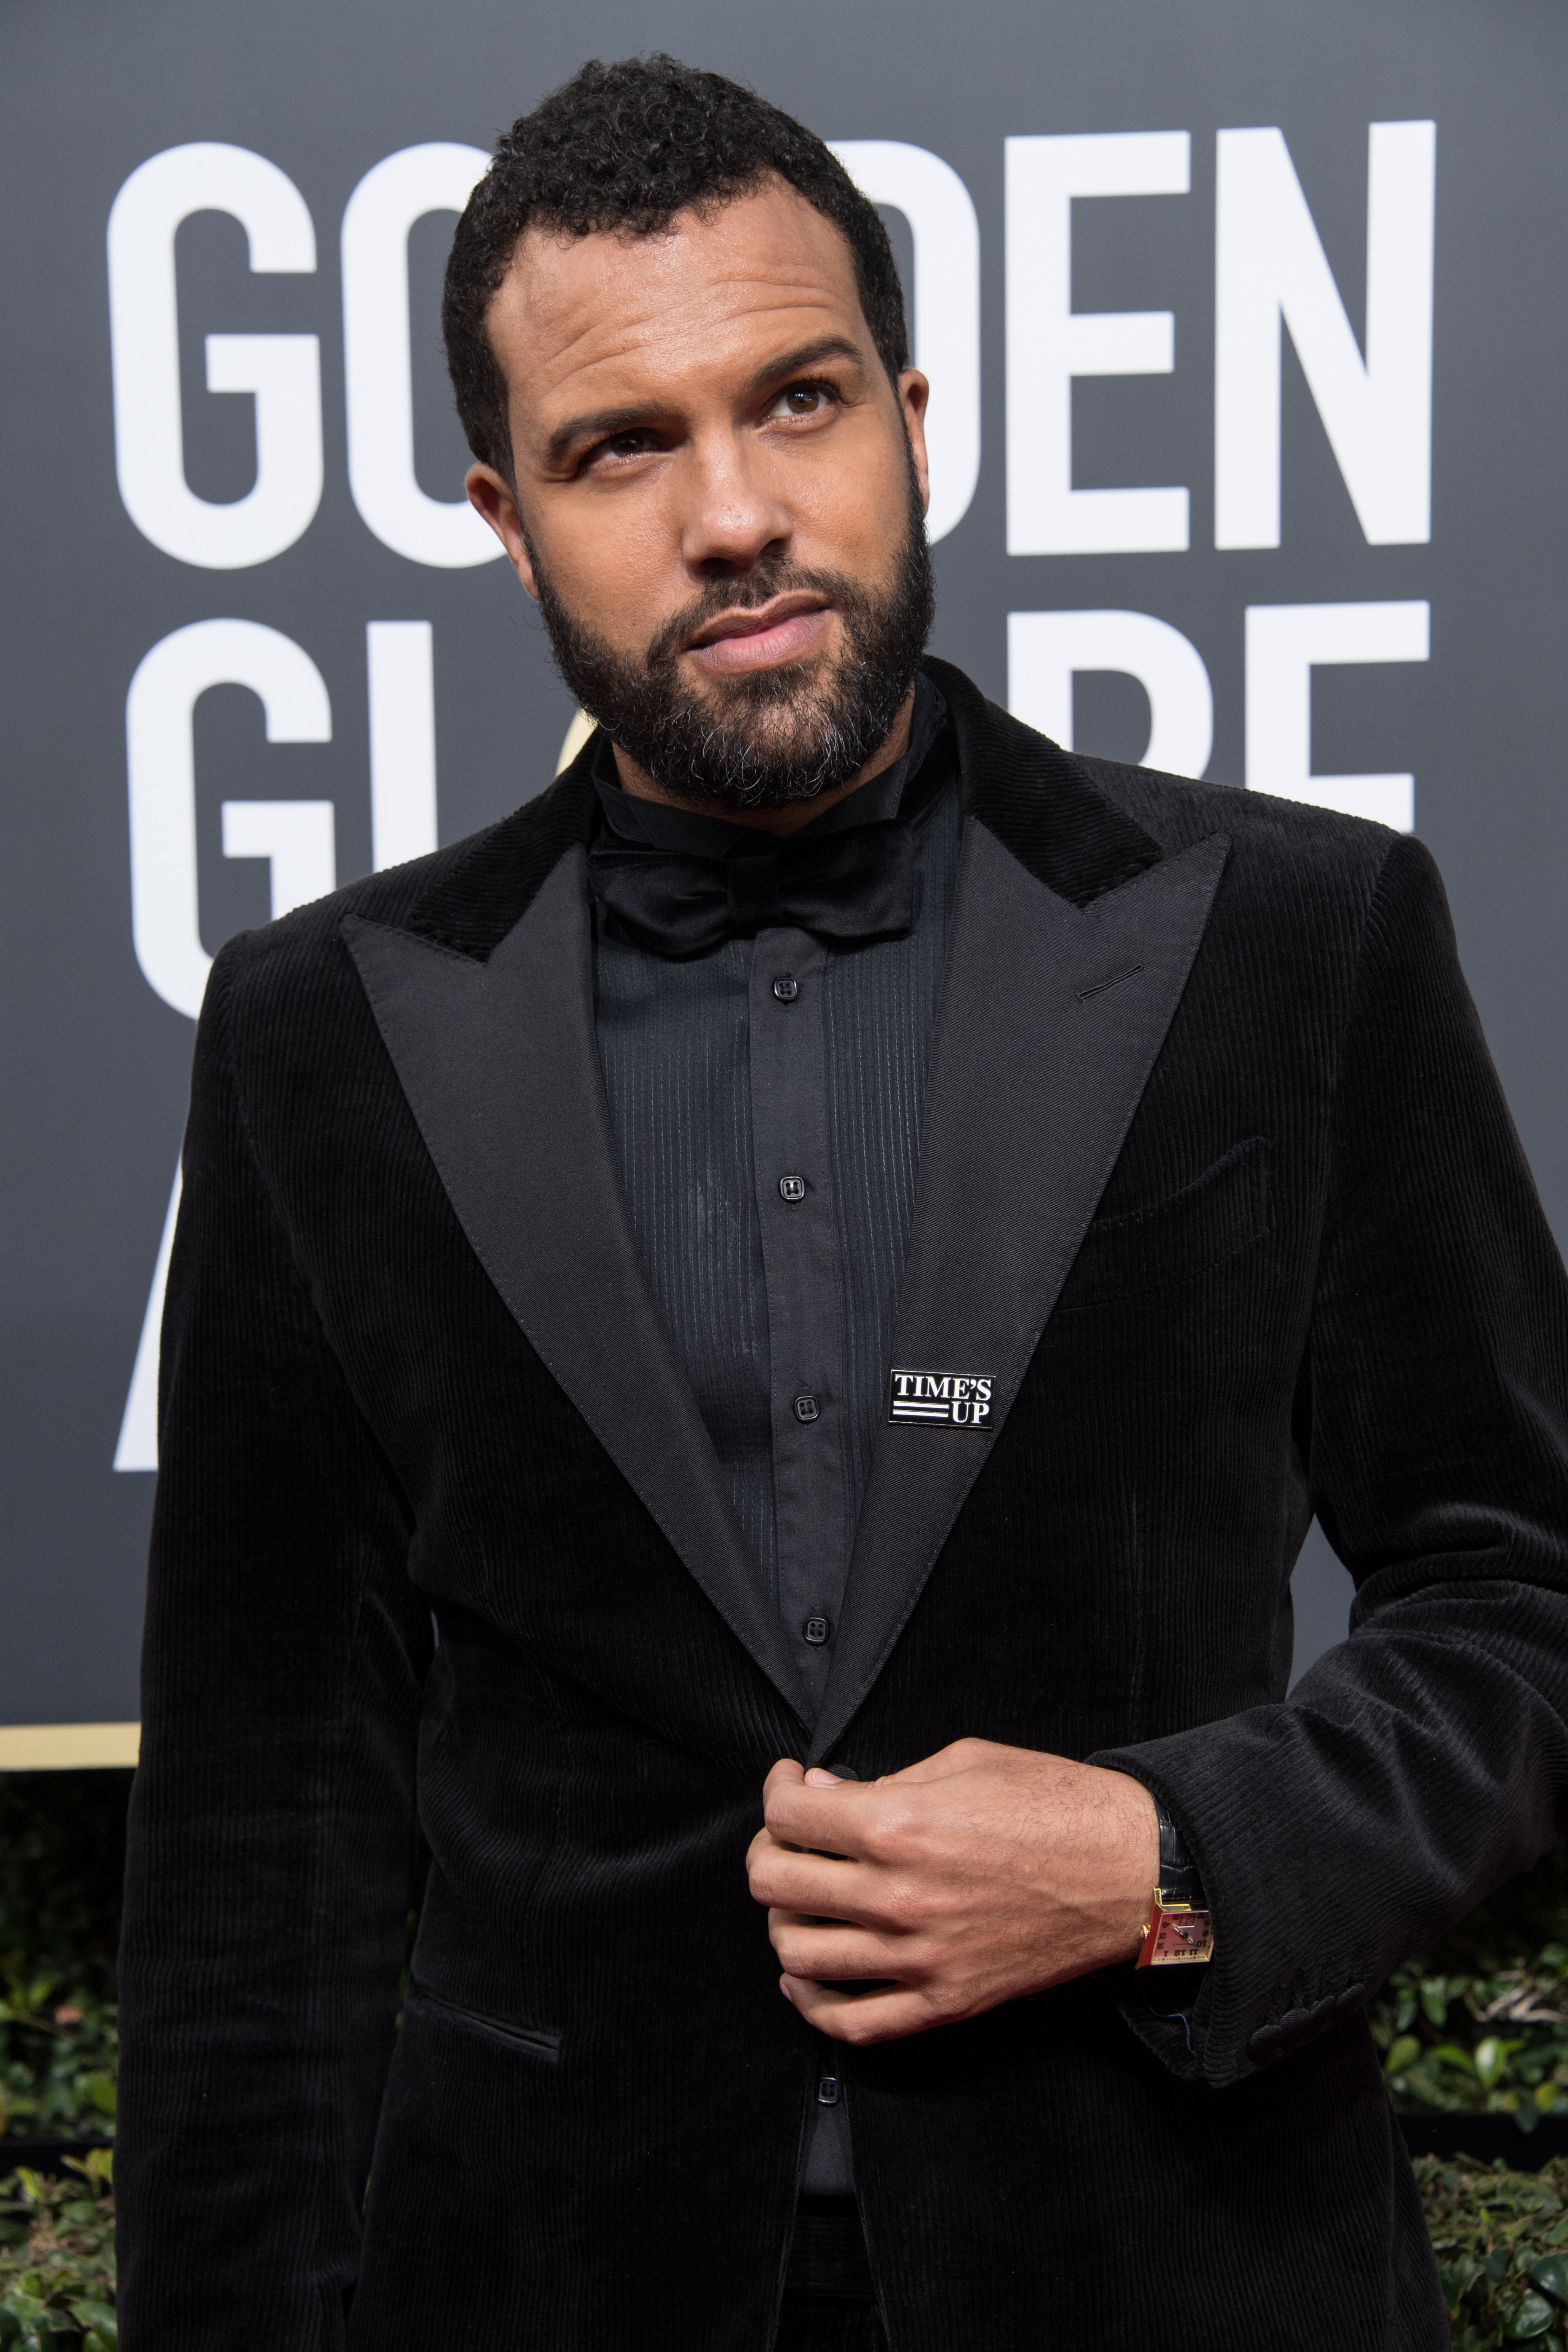 O.T. Fagbenle arrives at the 75th Annual Golden Globe Awards at the Beverly Hilton in Beverly Hills, CA on Sunday, January 7, 2018.